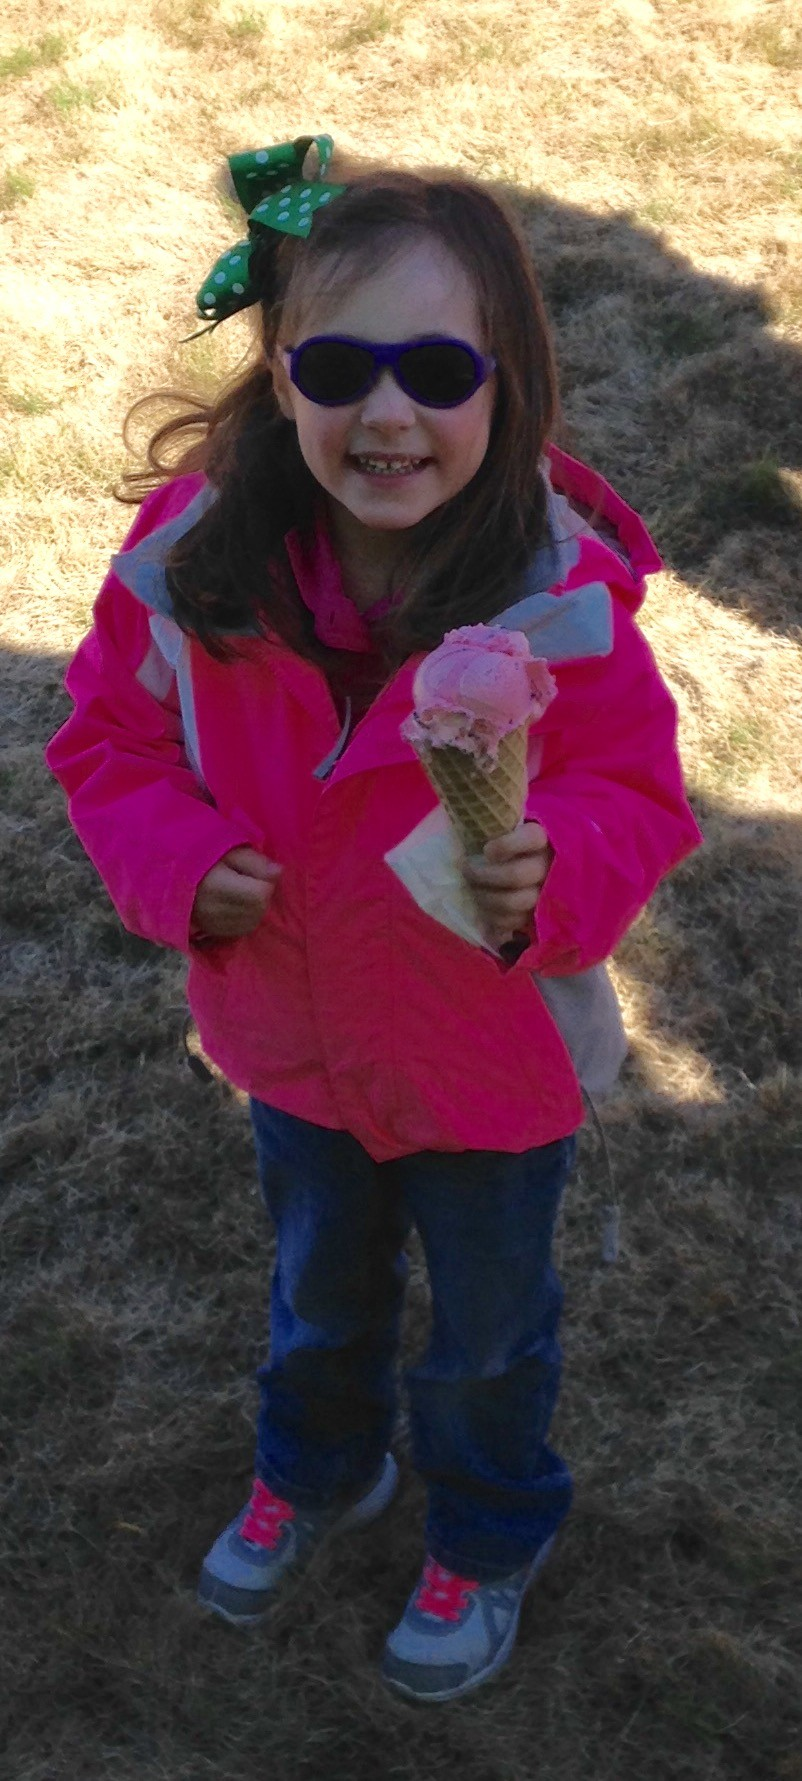 Little girl eating her ice cream cone